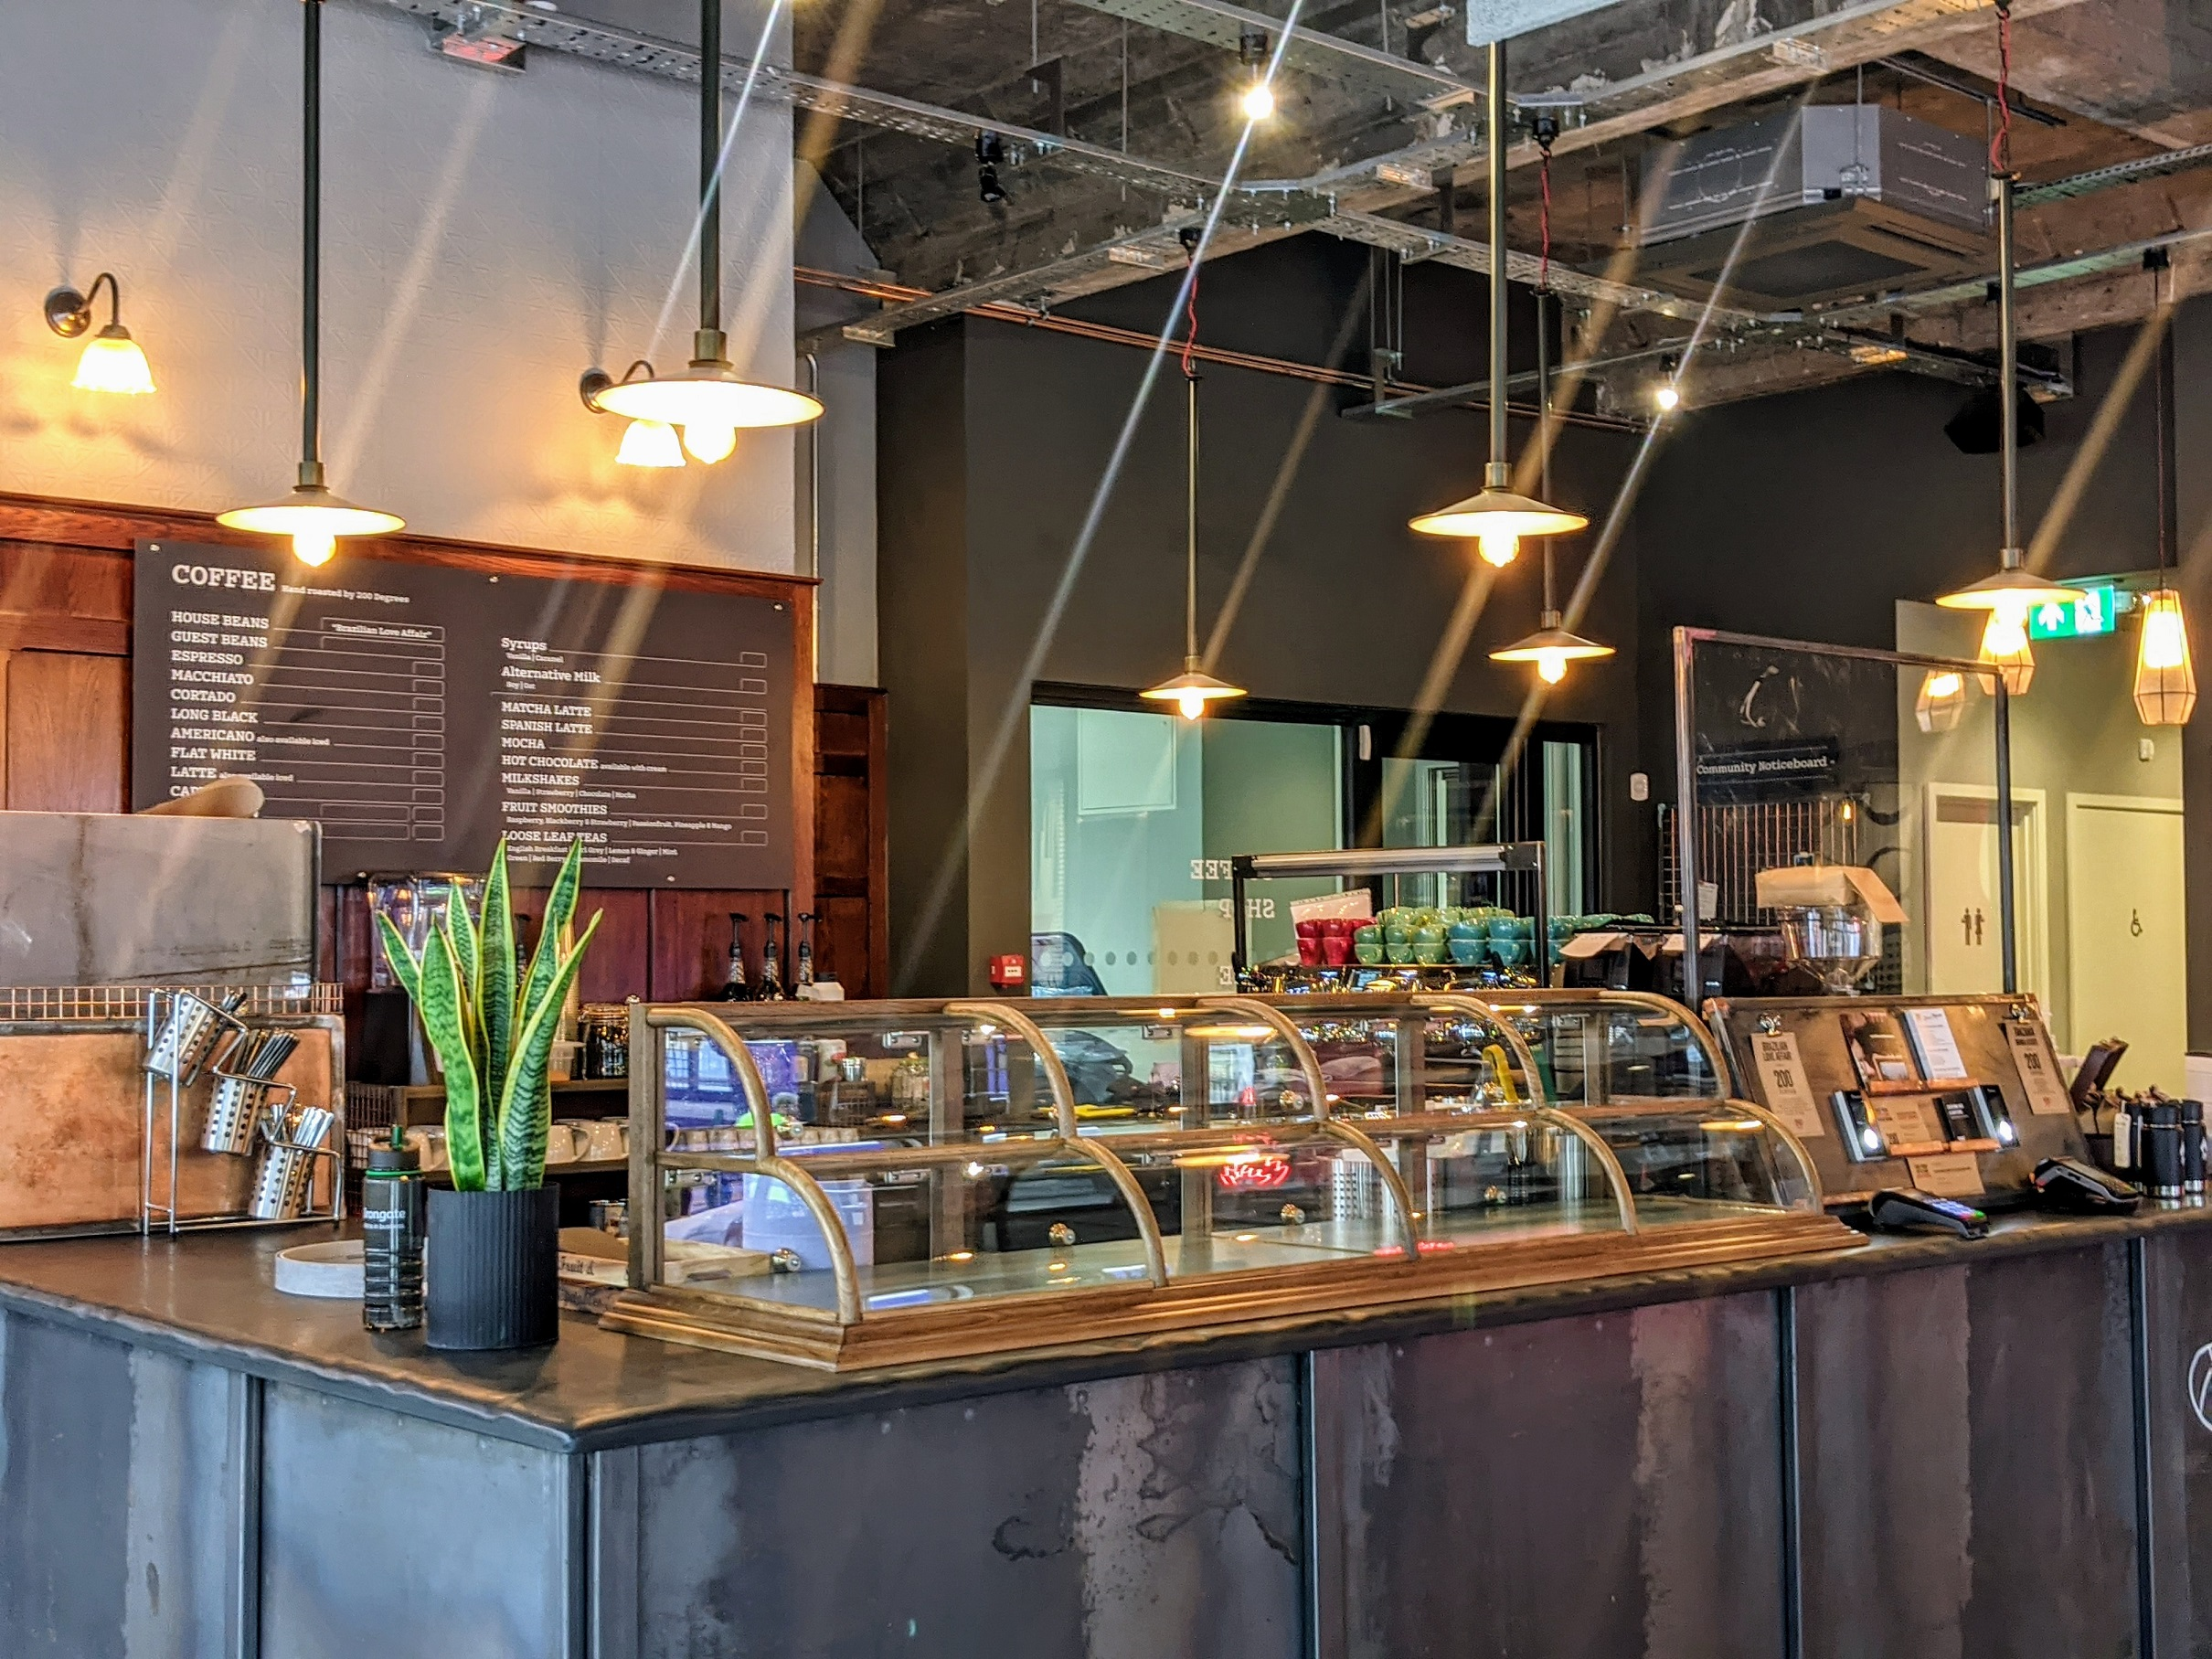 200 Degrees Coffee opens its new coffee shop in Manchester today